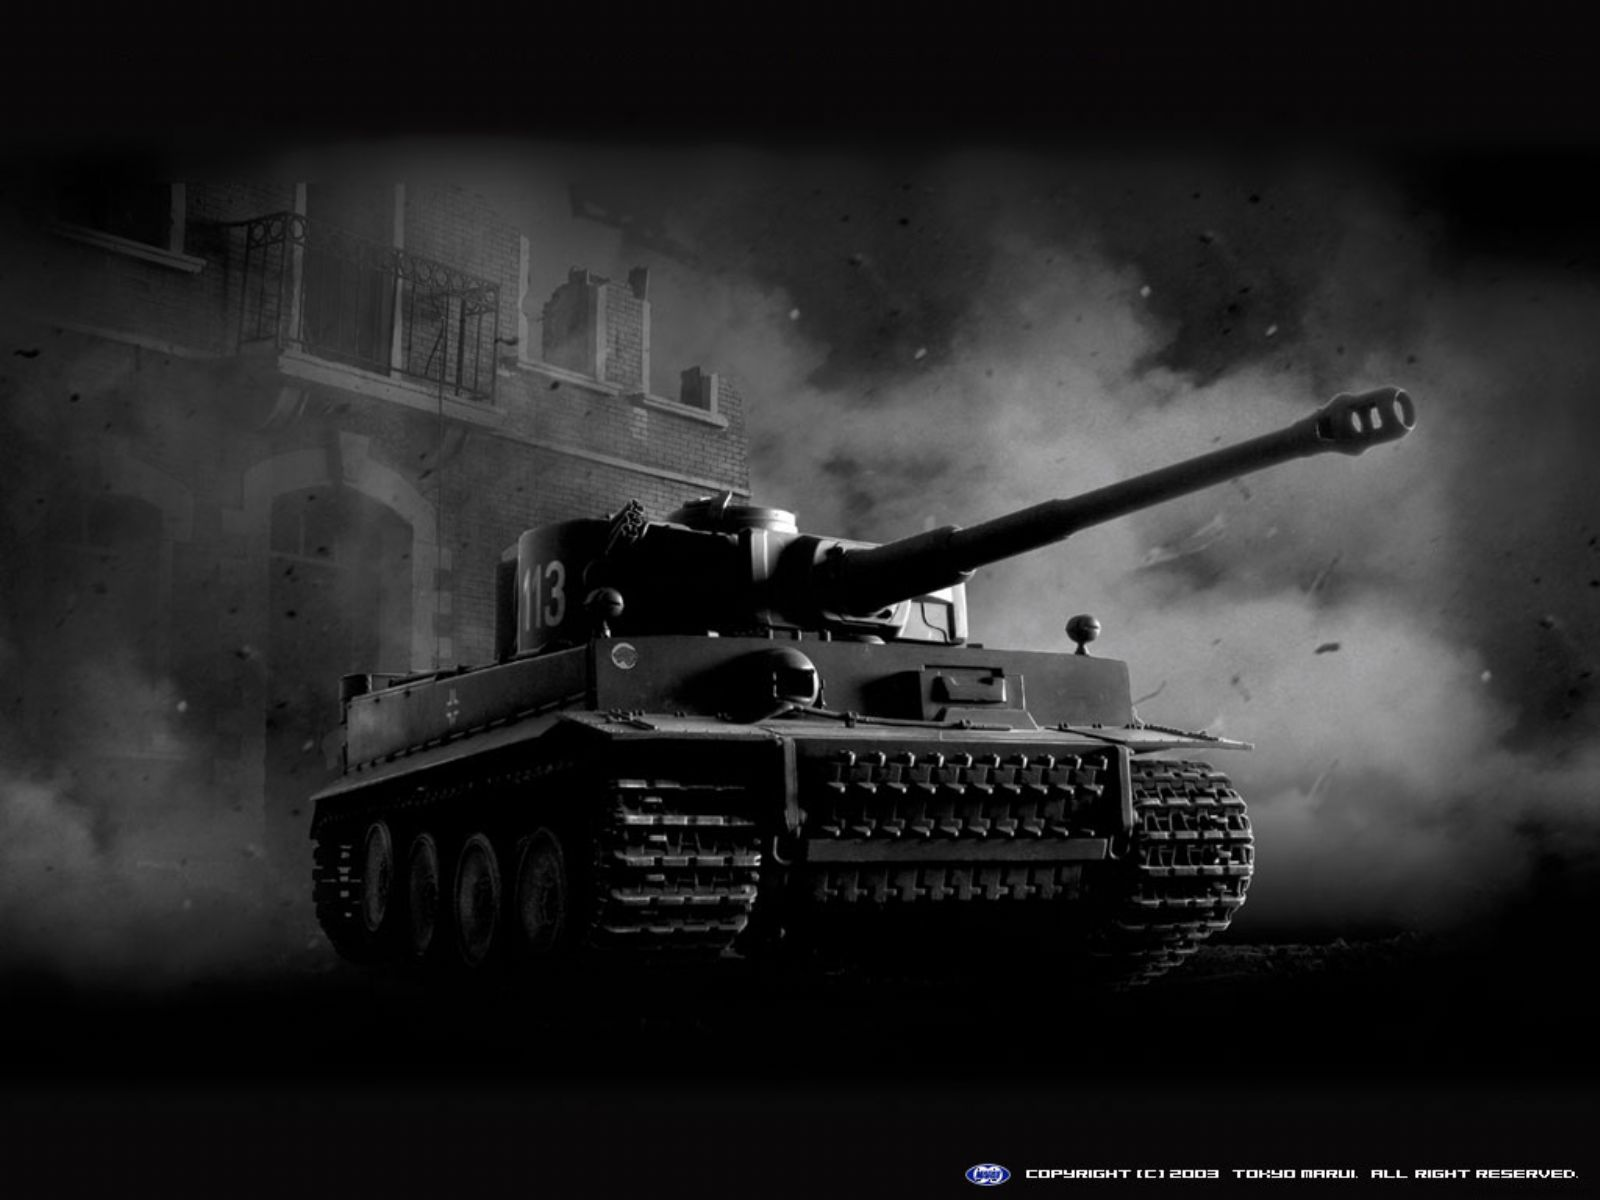 Tiger Tanks Wallpaper 1600x1200 Tiger Tanks 1600x1200